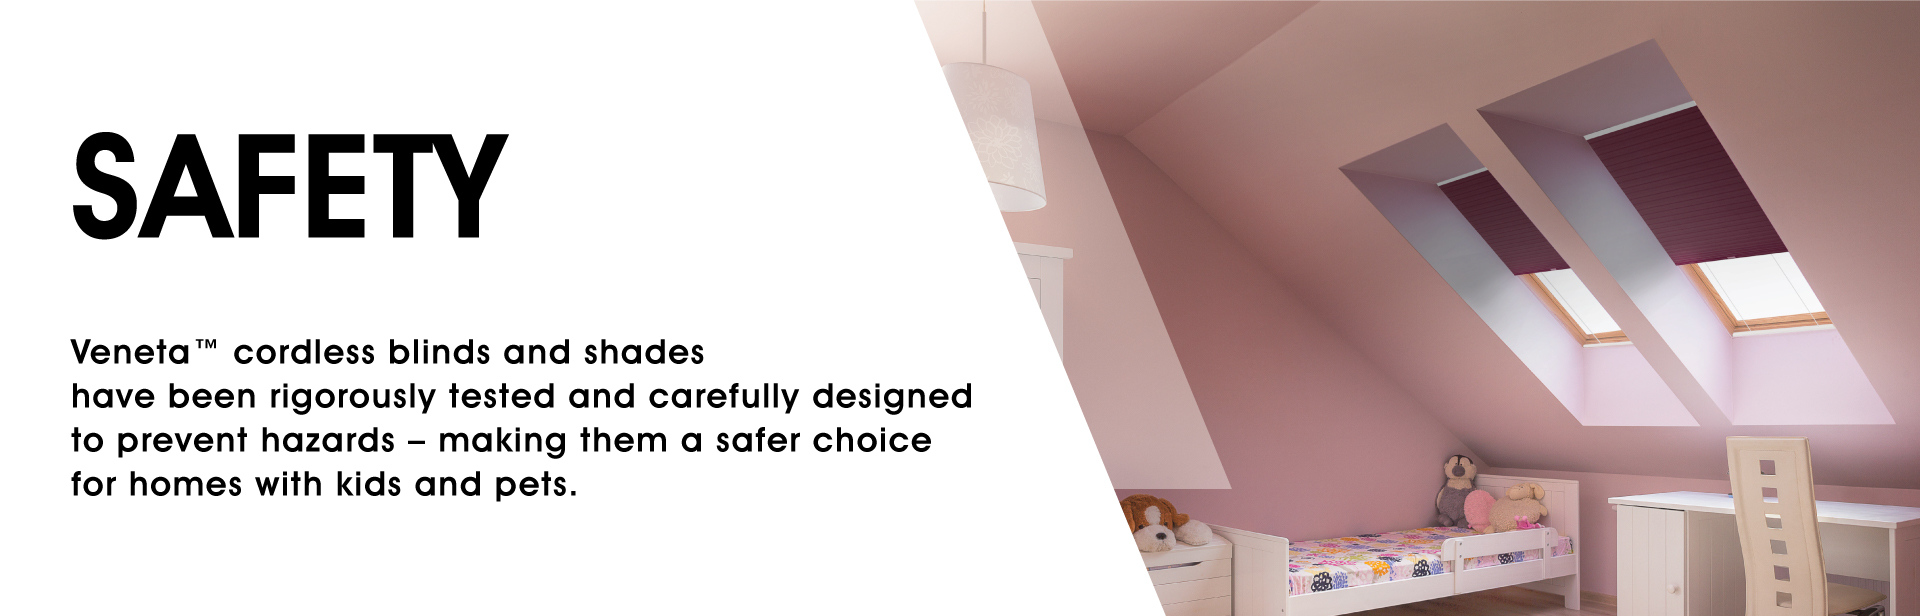 Safety: Veneta cordless blinds & shades have been rigorously tested and carefully designed to prevent hazards – making them a safer choice for homes with kids and pets.